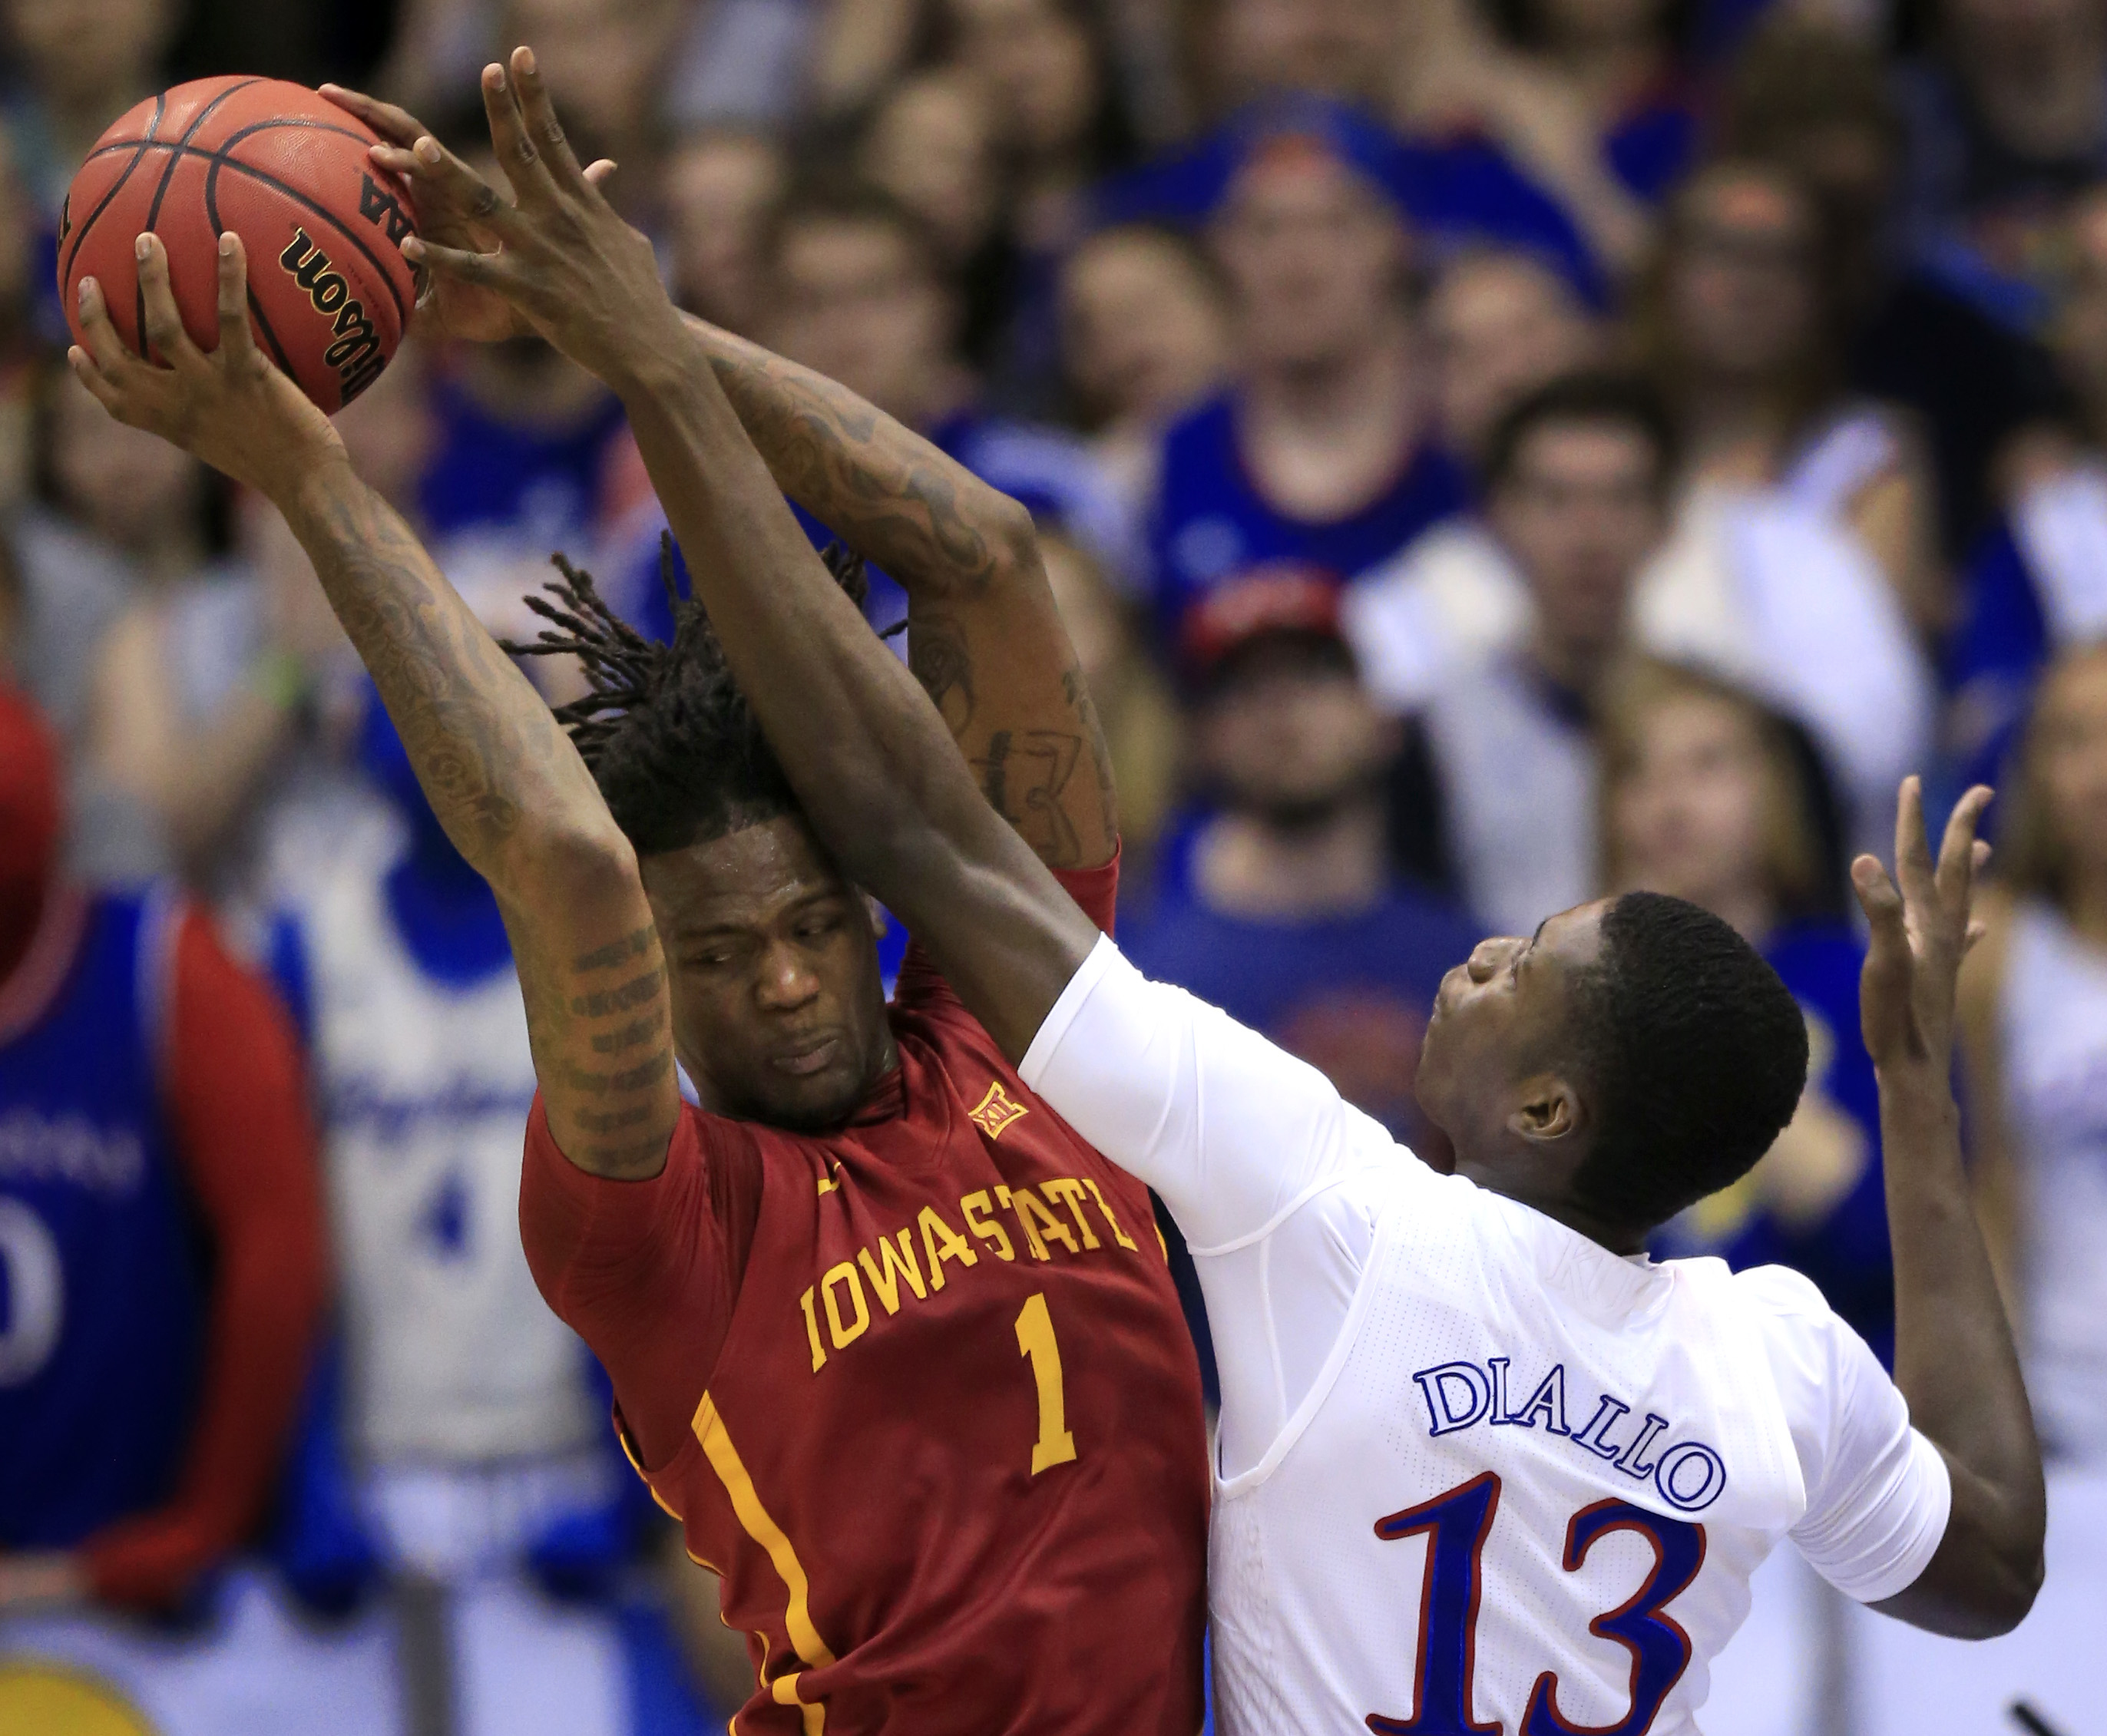 Iowa State forward Jameel McKay (1) rebounds against Kansas forward Cheick Diallo (13) during the first half of an NCAA college basketball game in Lawrence, Kan., Saturday, March 5, 2016. (AP Photo/Orlin Wagner)